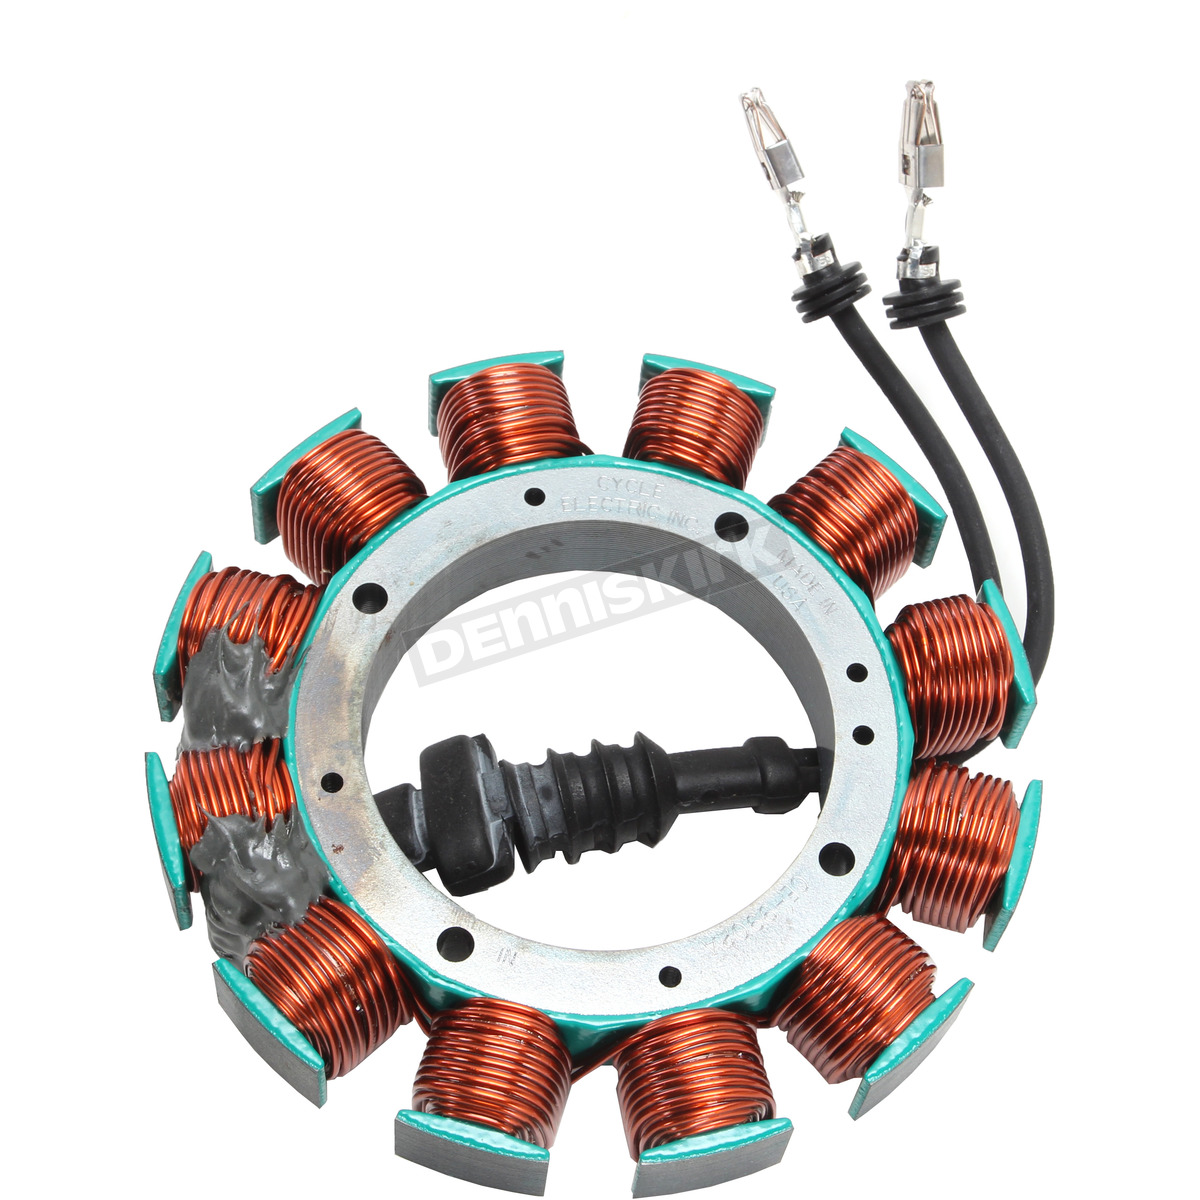 Compufire Replacement Stator For 32a Charging System Kit 2010617 Compu Fire Ignition Wiring Diagram 2112 1237 Harley Davidson Motorcycle Dennis Kirk